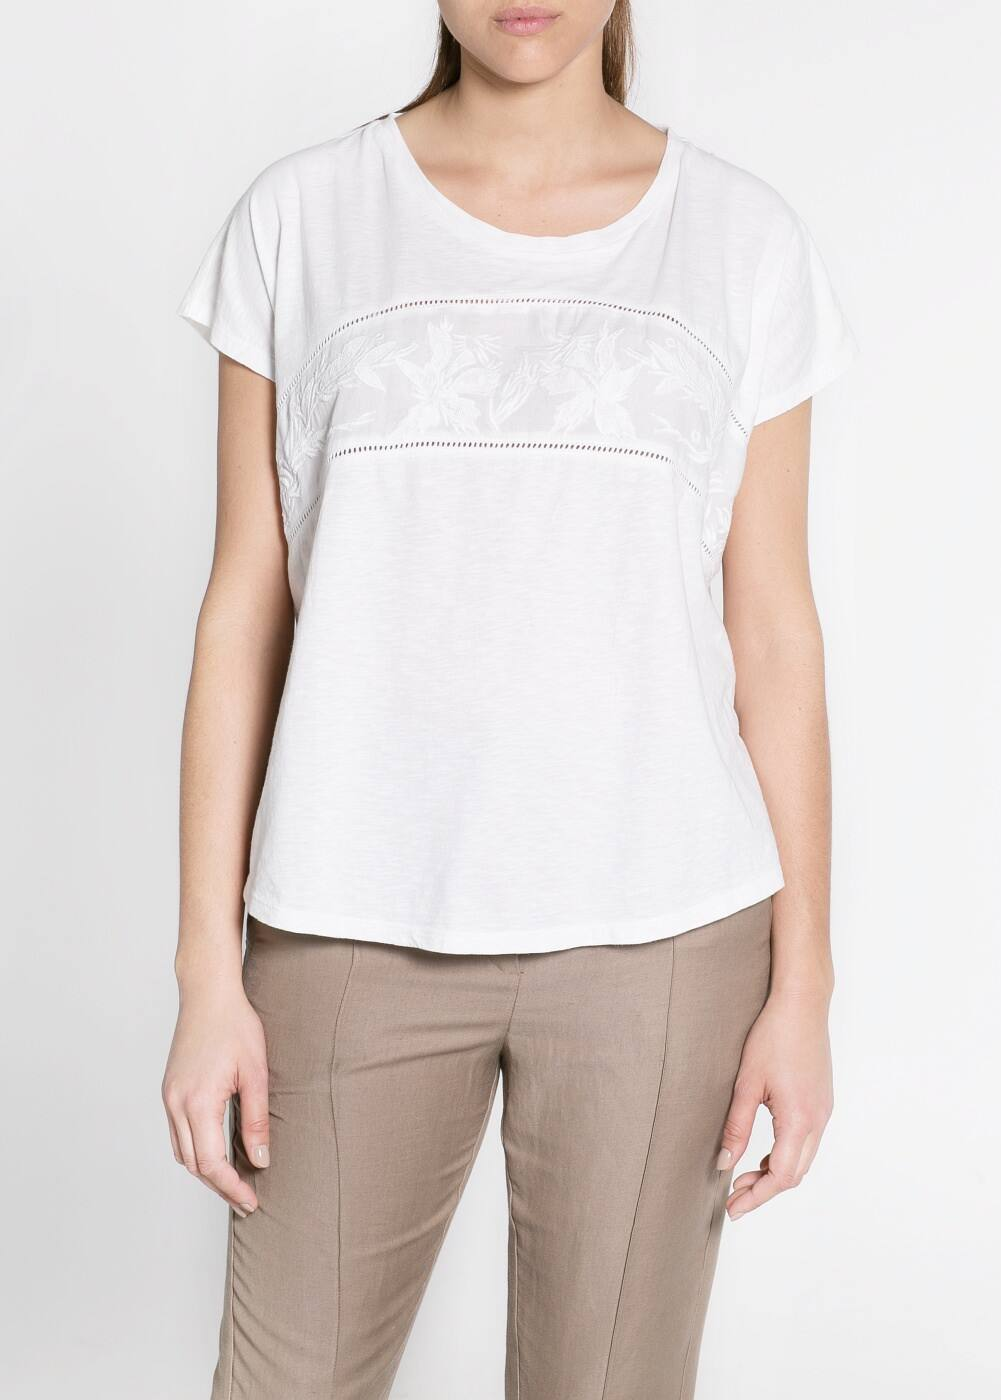 Embroidered cotton t-shirt